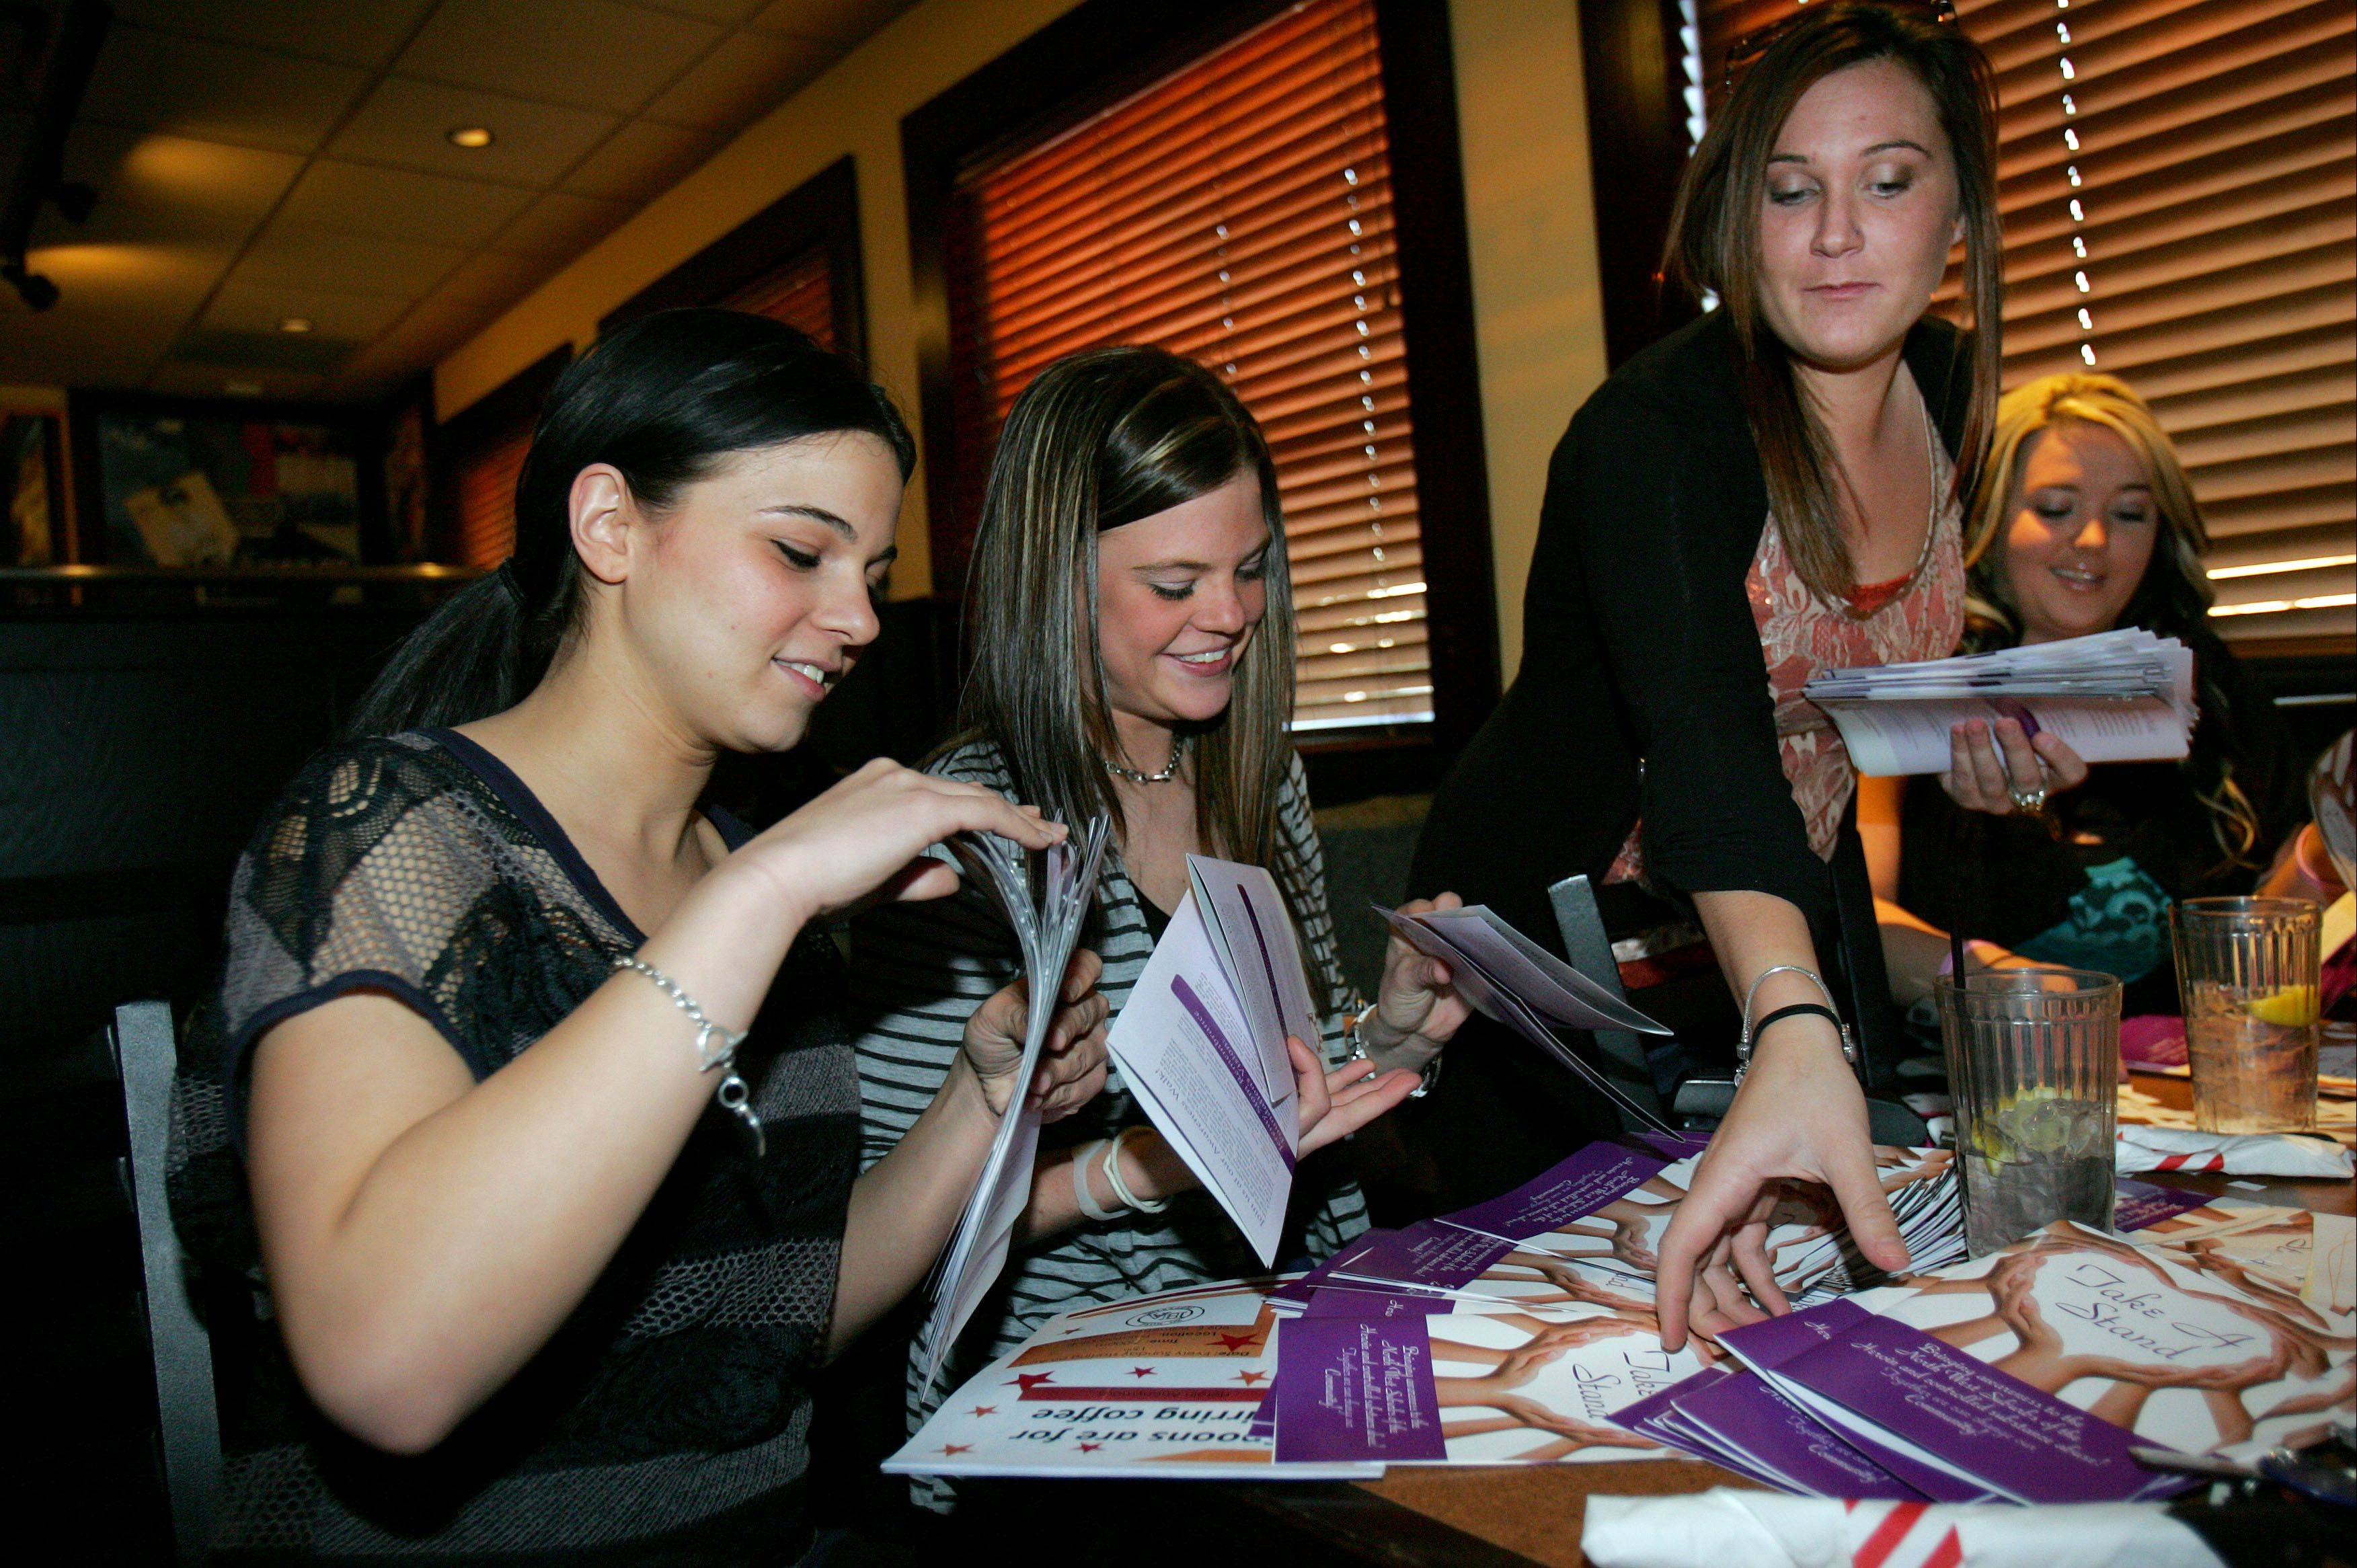 Take A Stand founders, from left, Lindsey Dulian, Megan Hartigan, Shannon Brody and Heather Riley organize stacks of their brochures in Lake Zurich.